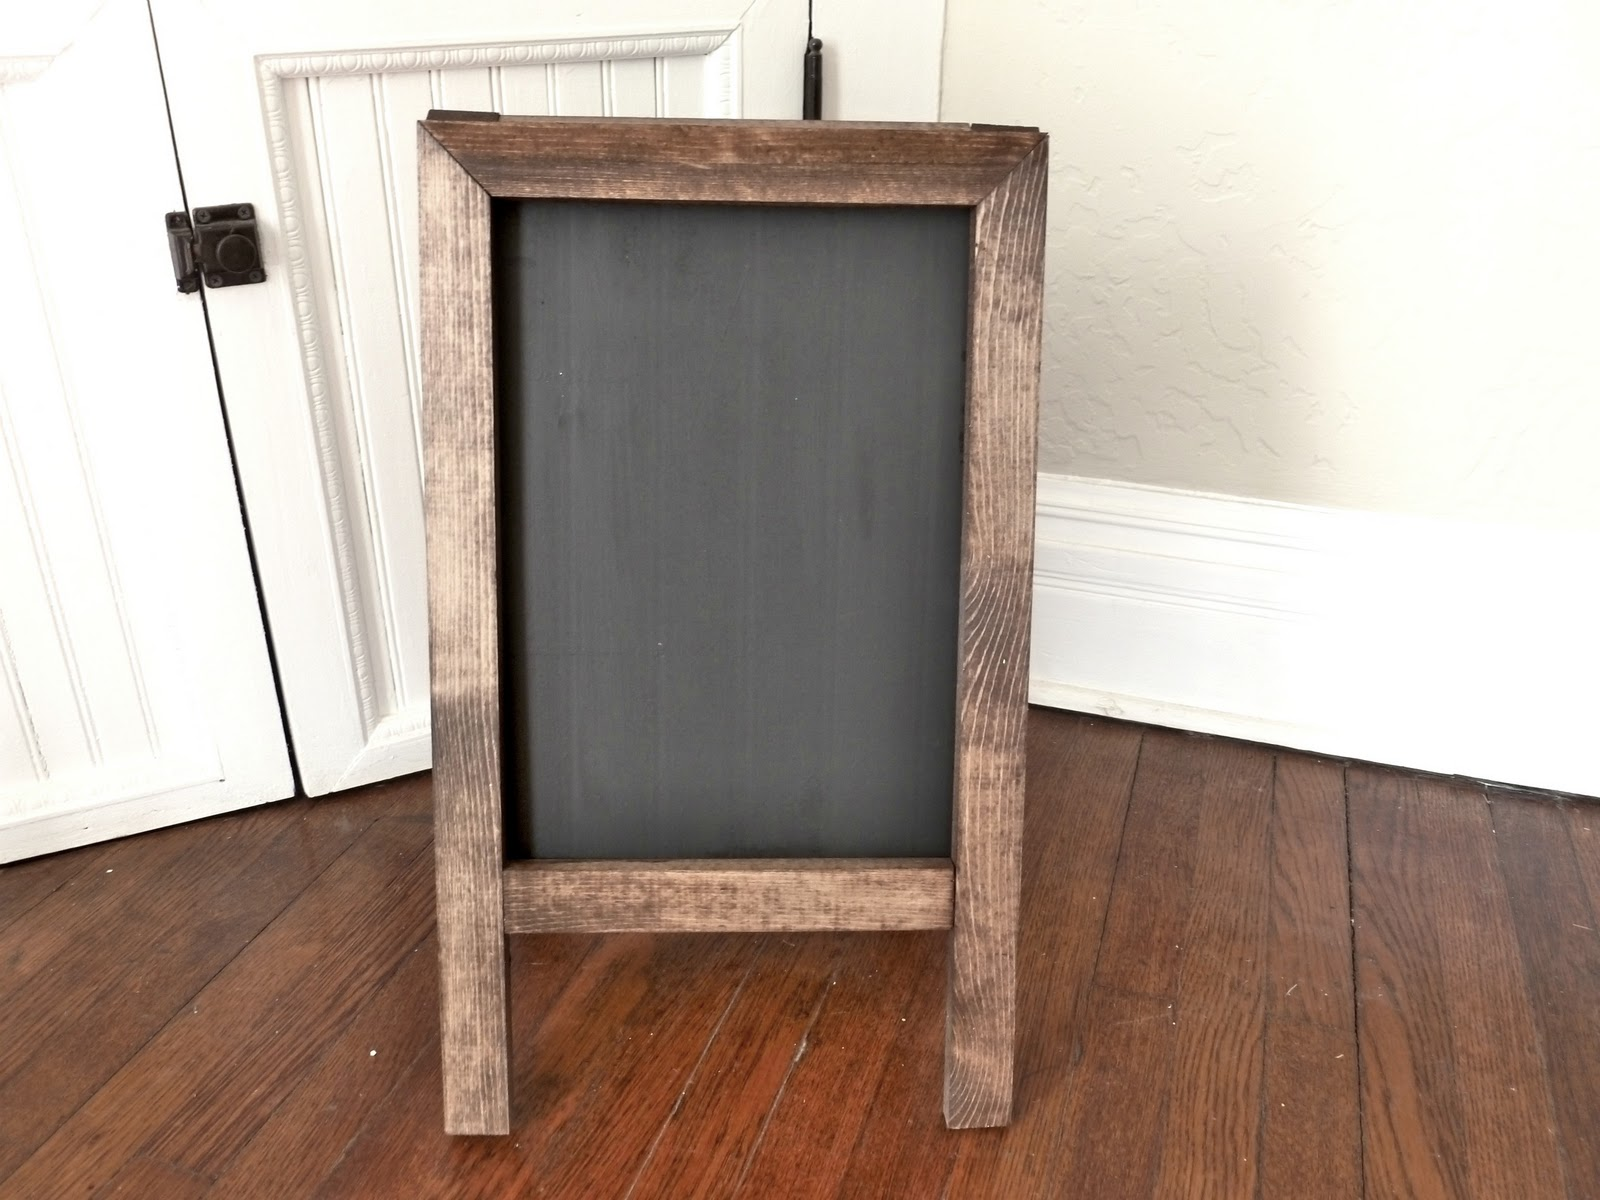 Fresh vintage home love: DIY Easel Chalkboard CV84